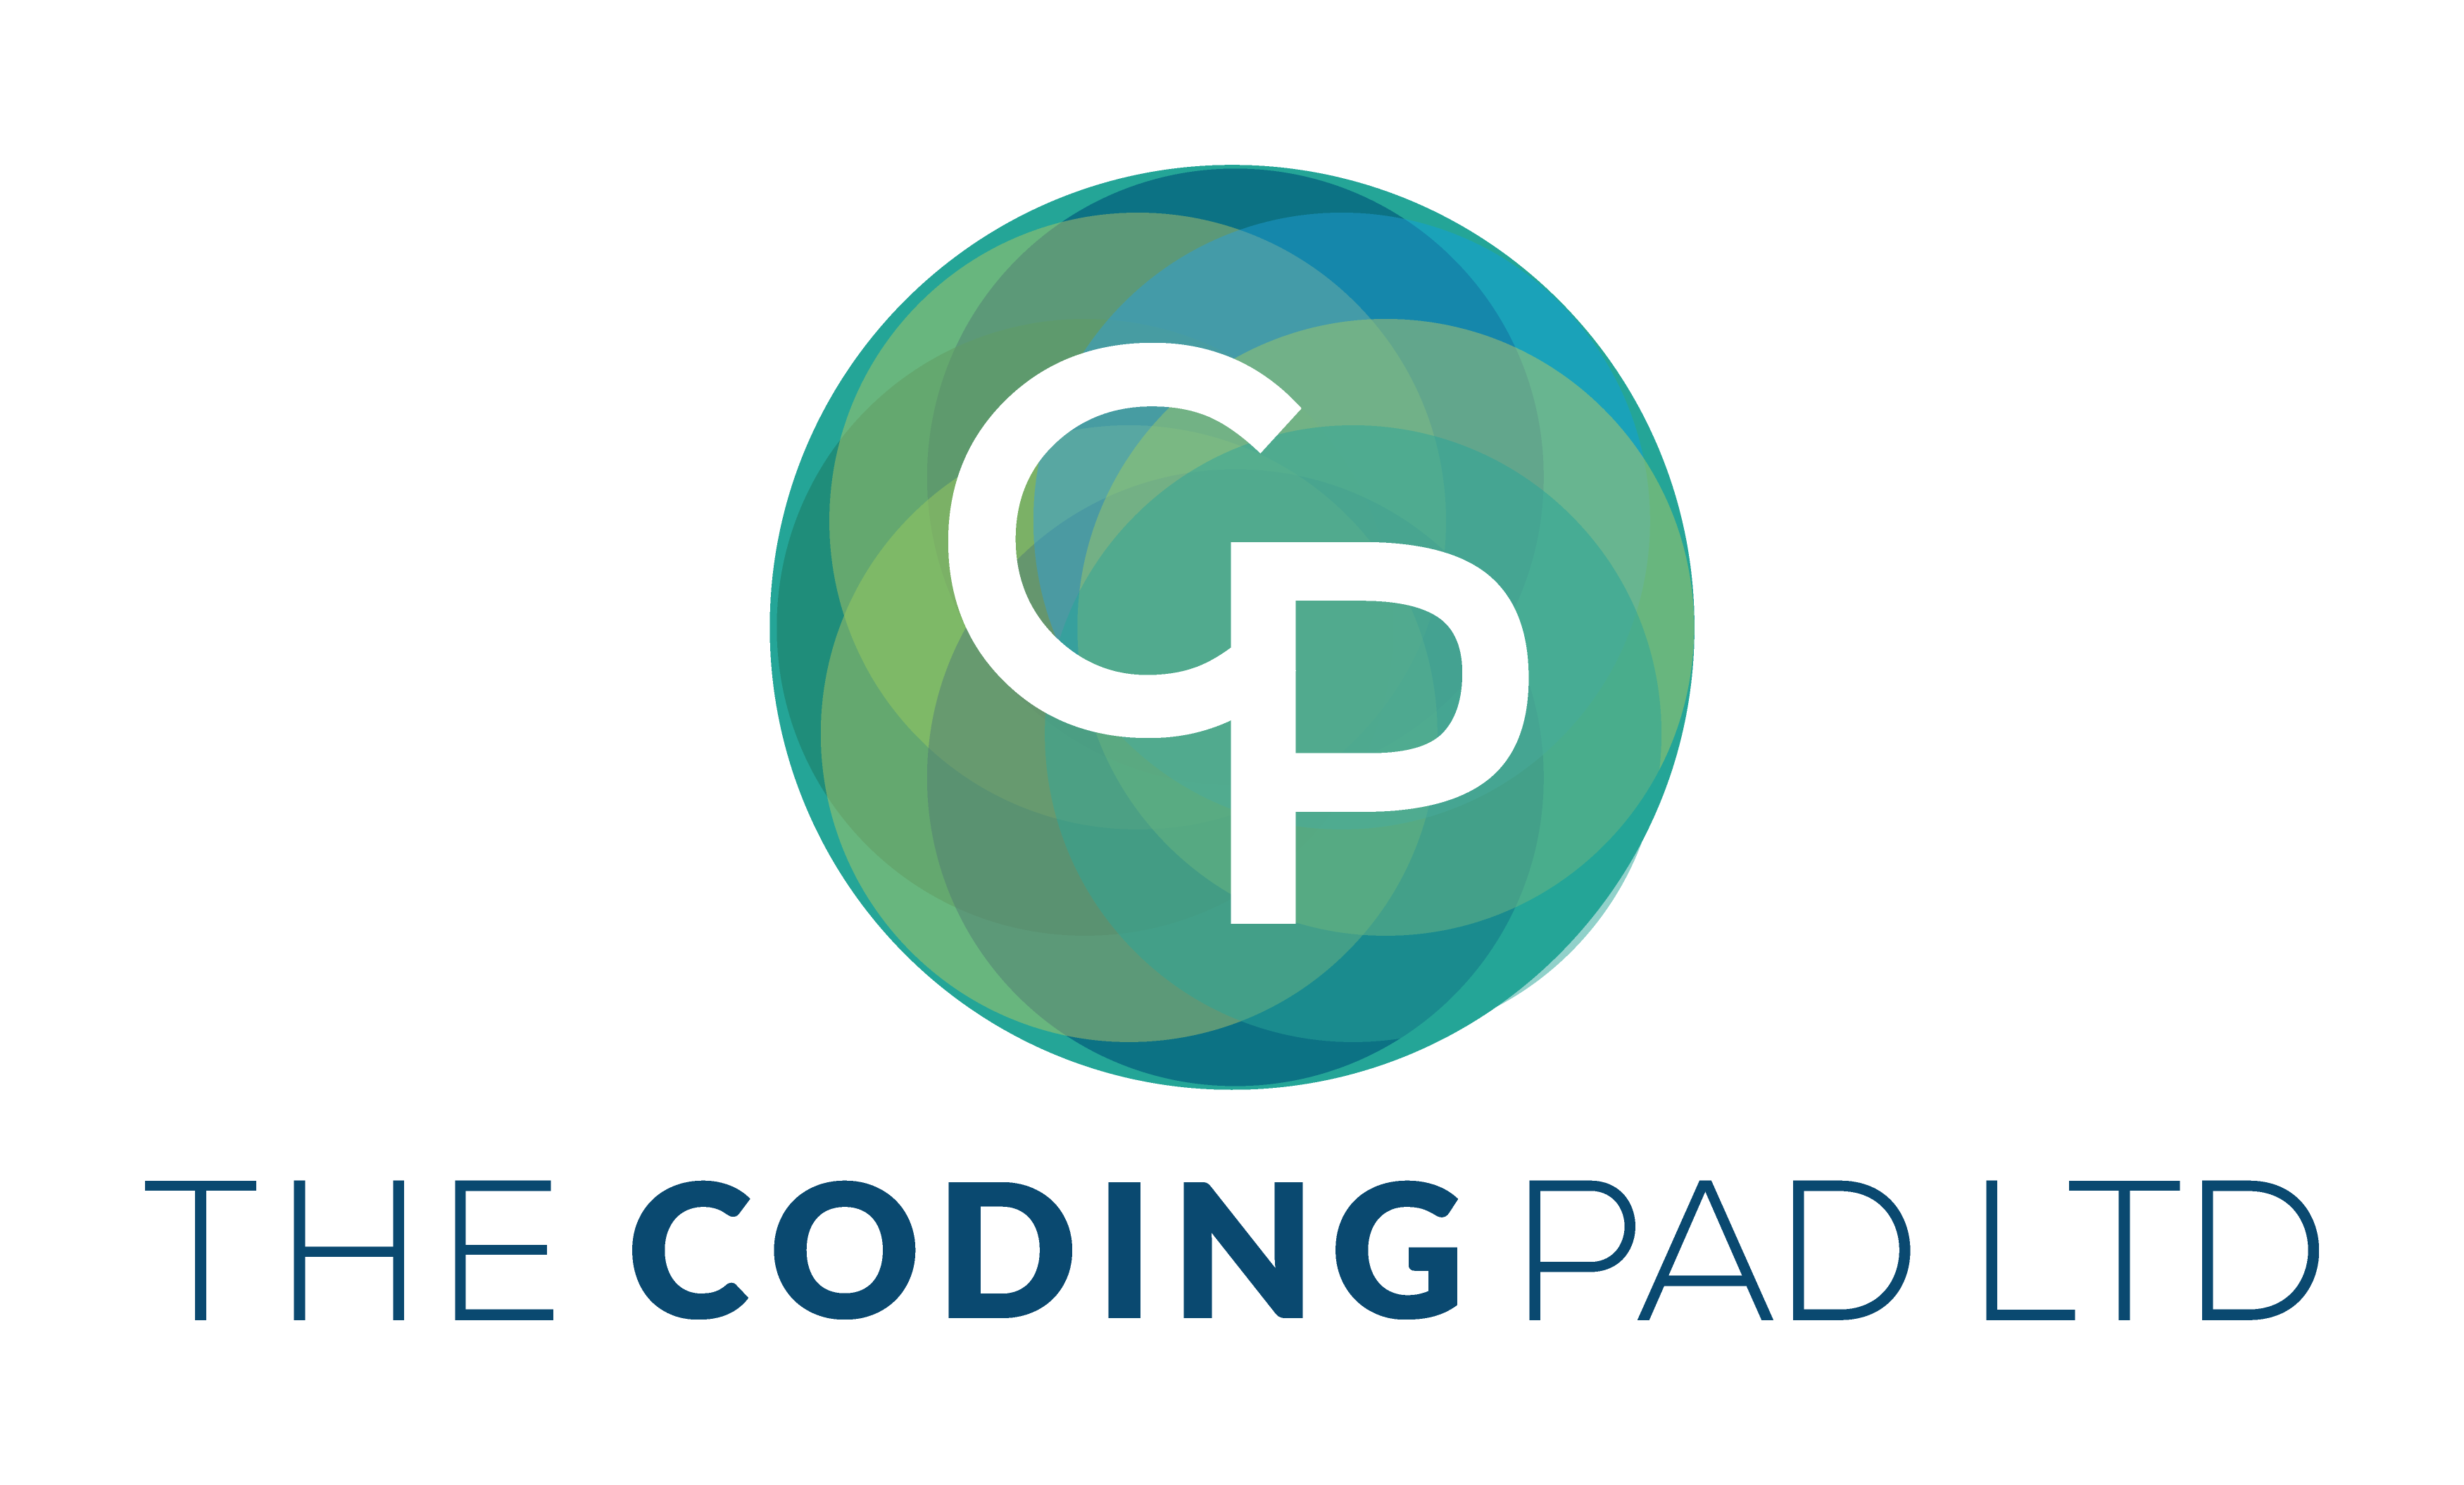 The Coding Pad Ltd